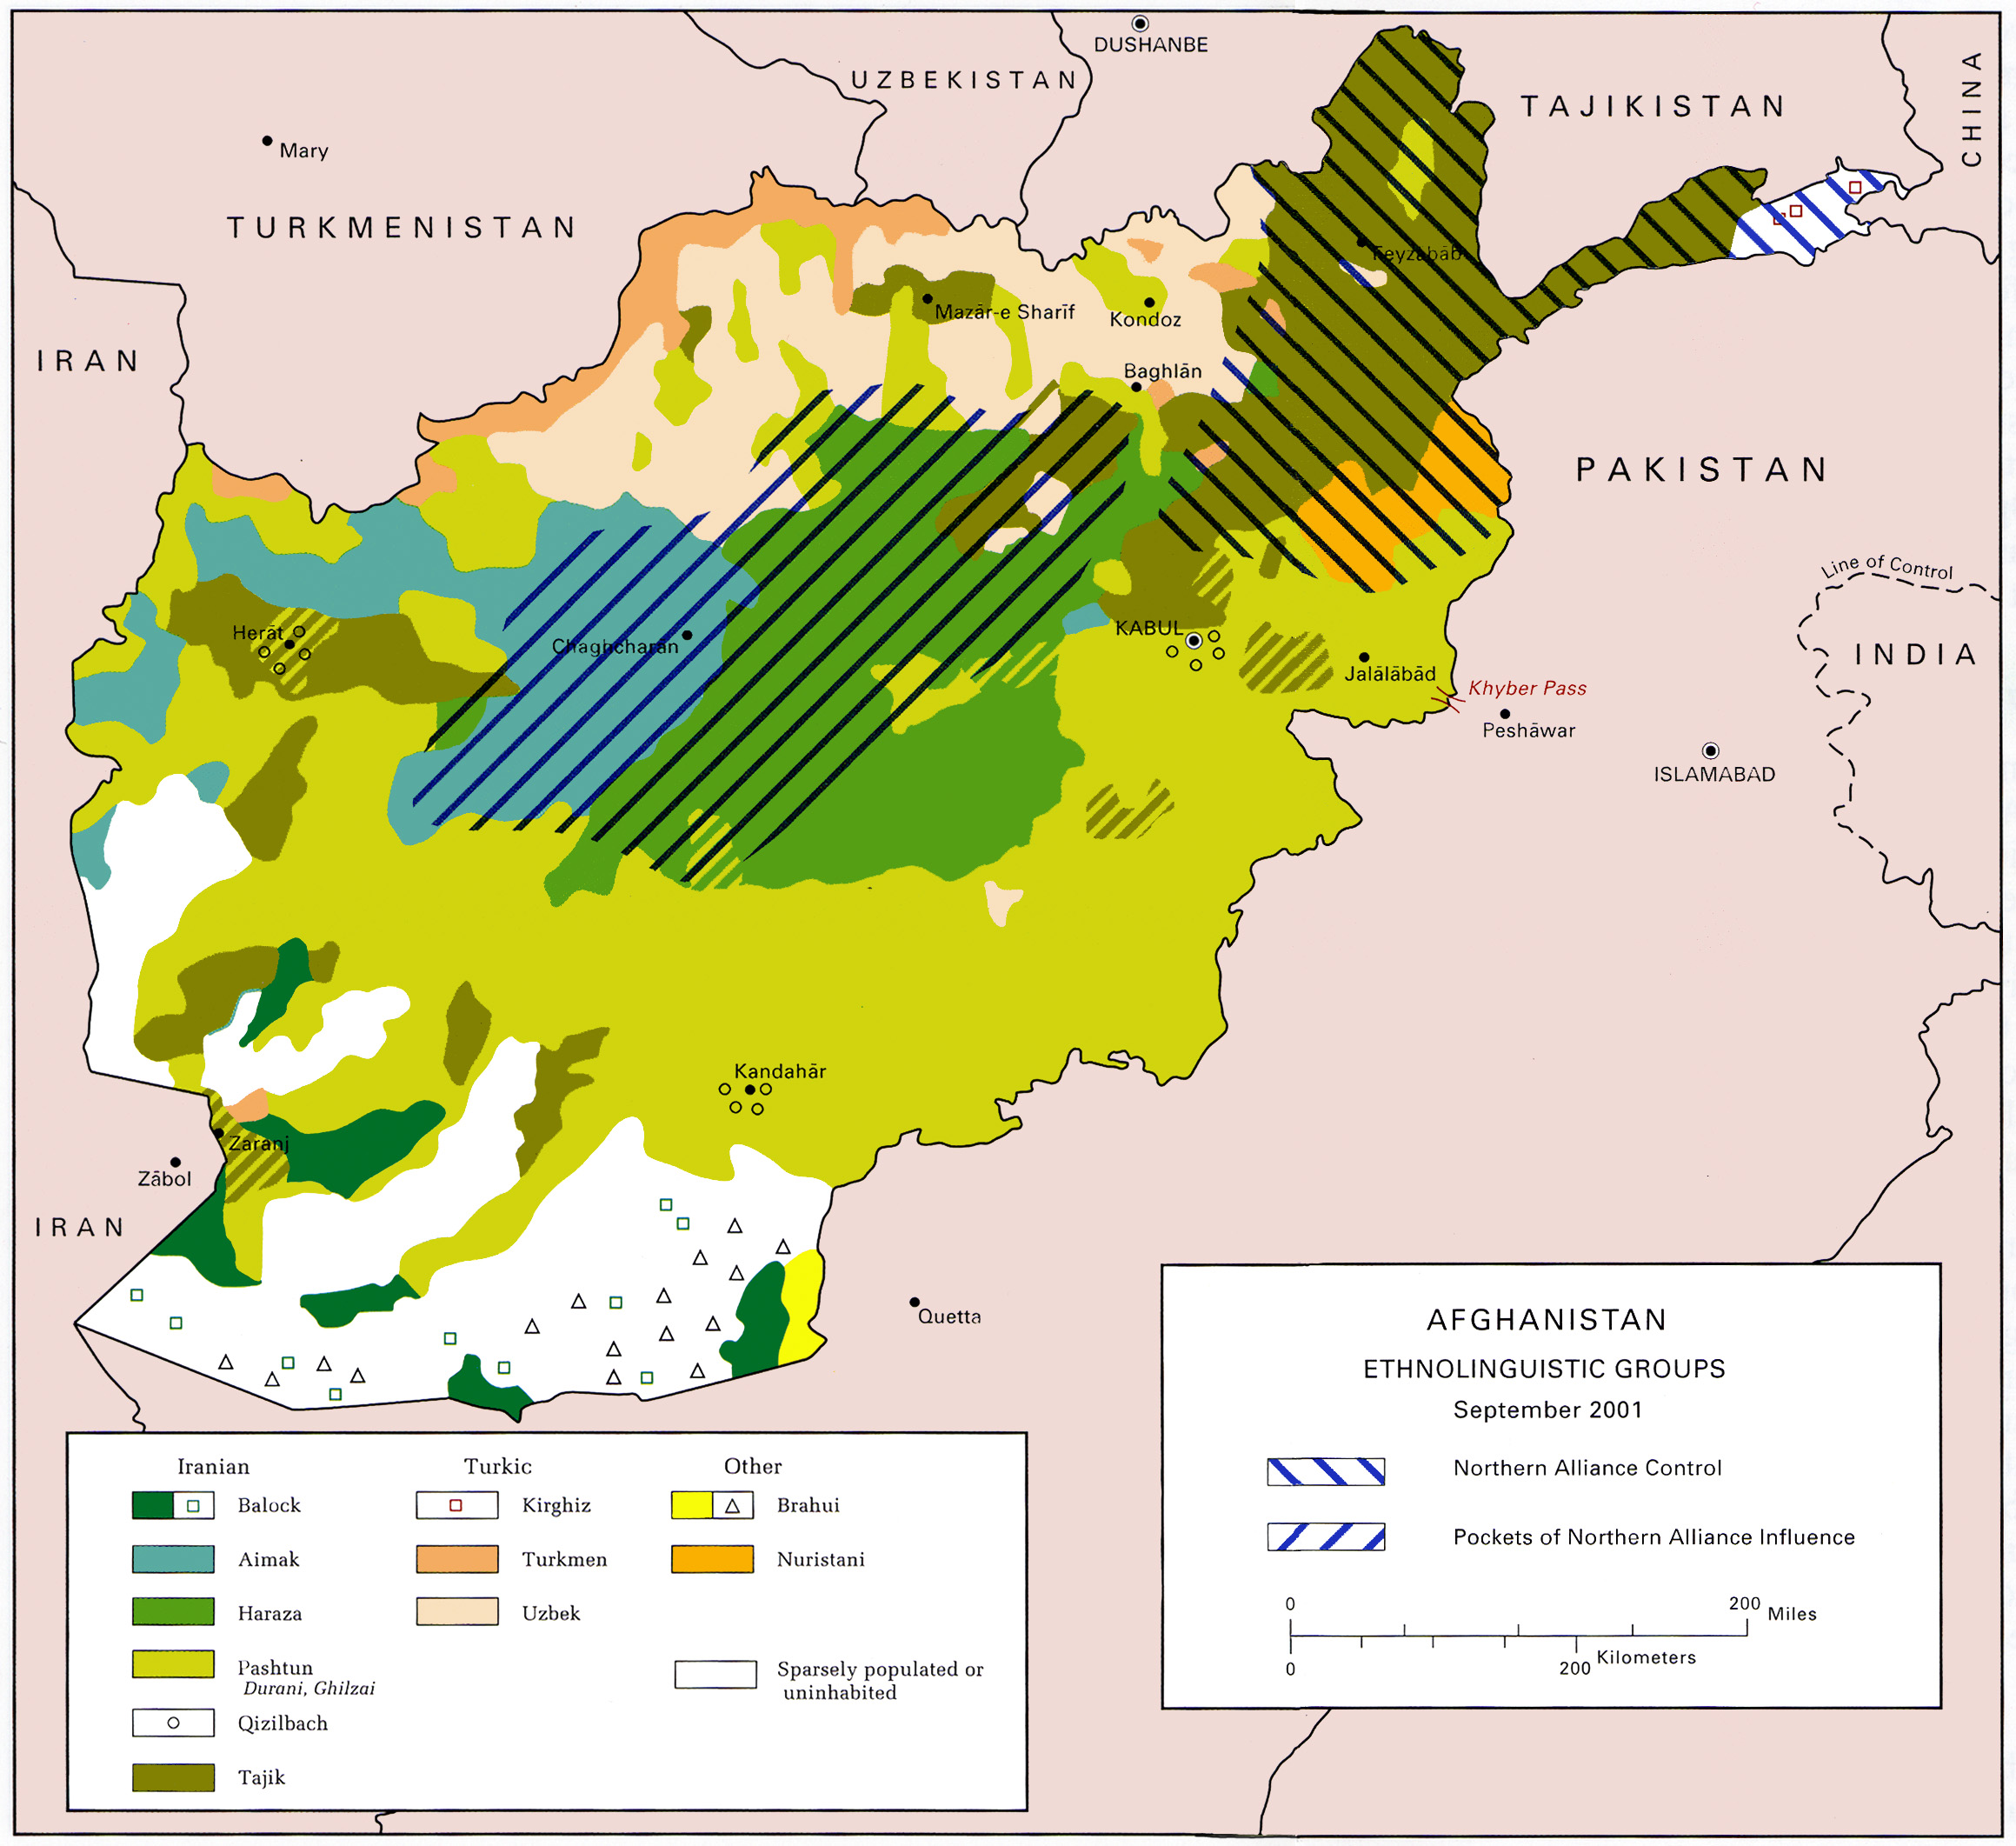 Map over ethnic groups in Afghanistan in 2001. Source: US Army